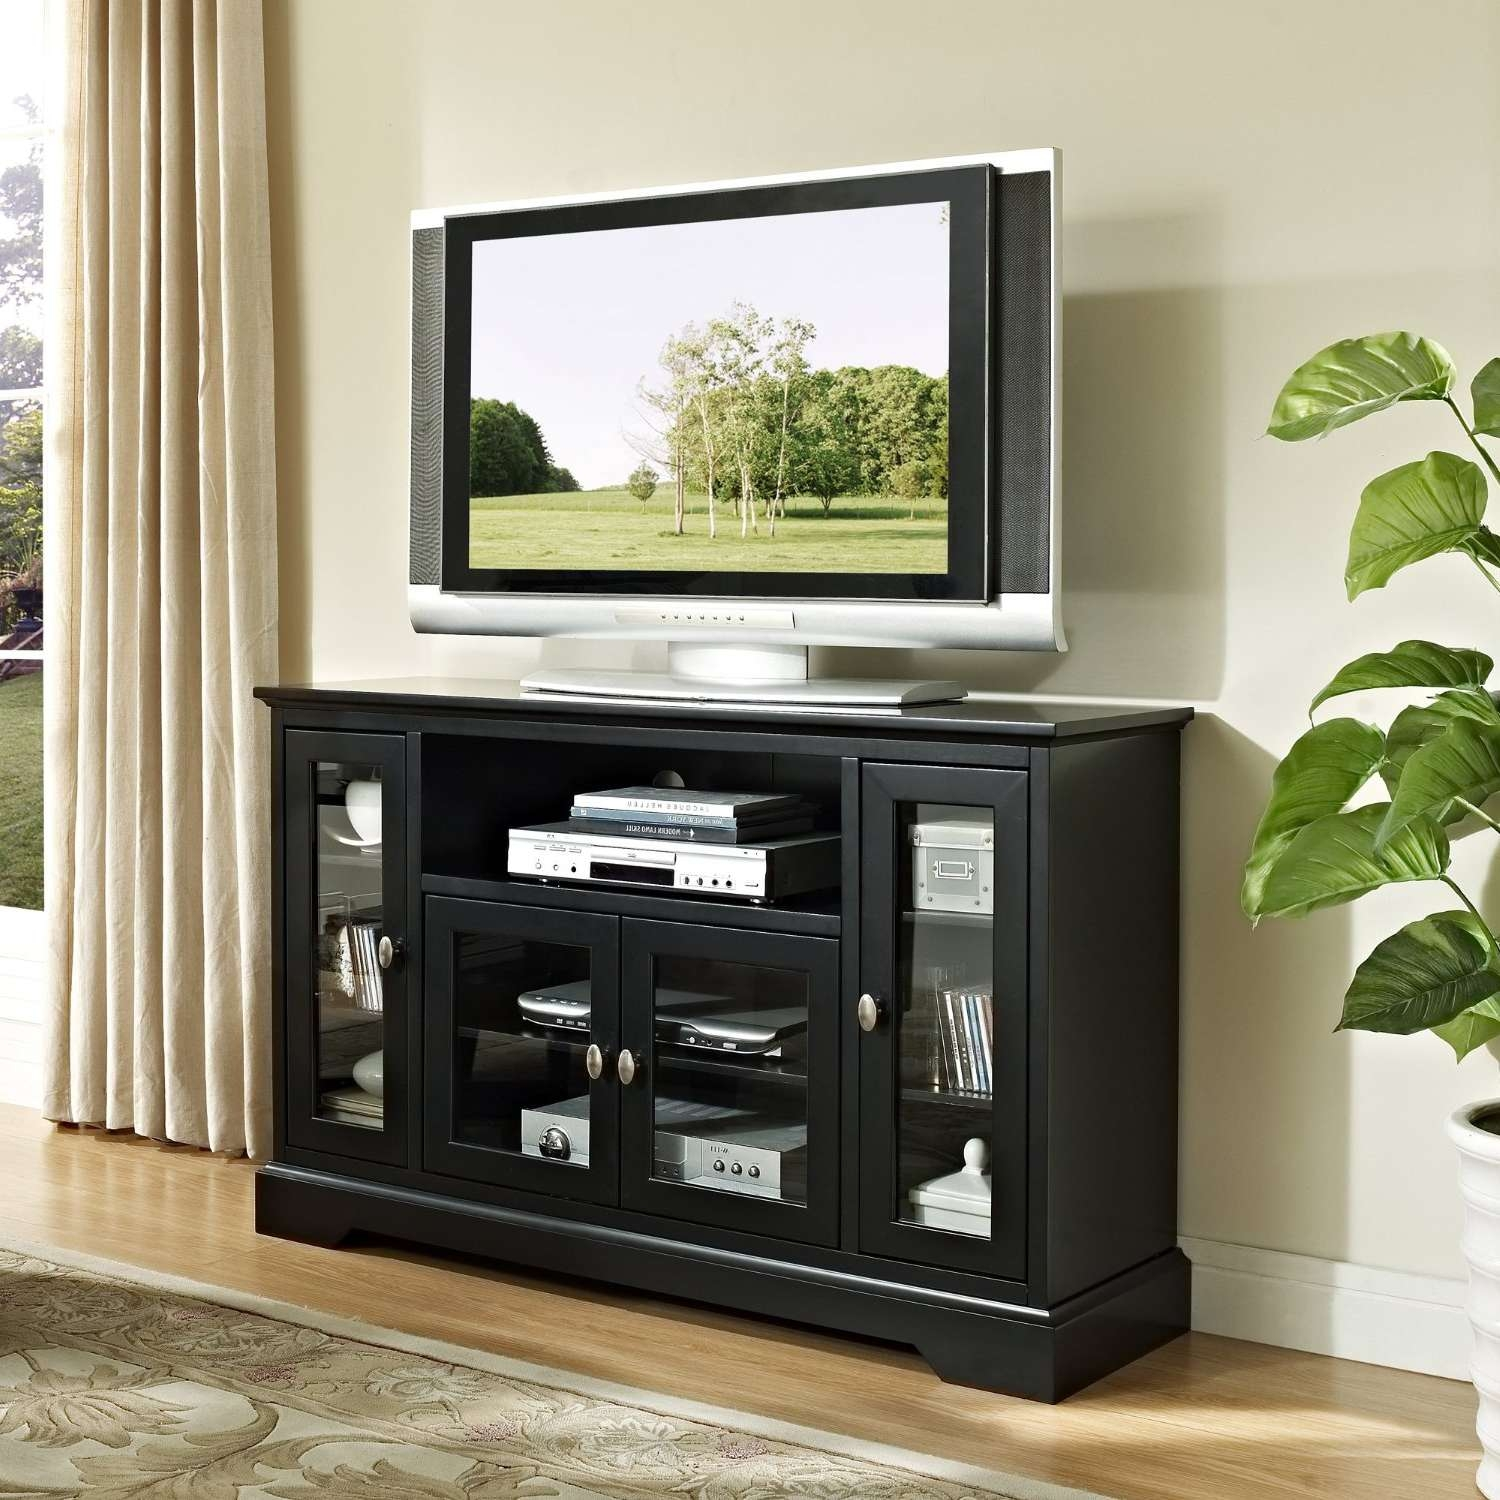 Modern Black Painted Mahogany Wood Media Stand With Glass Doors Of Pertaining To Tall Tv Stands For Flat Screen (View 6 of 15)